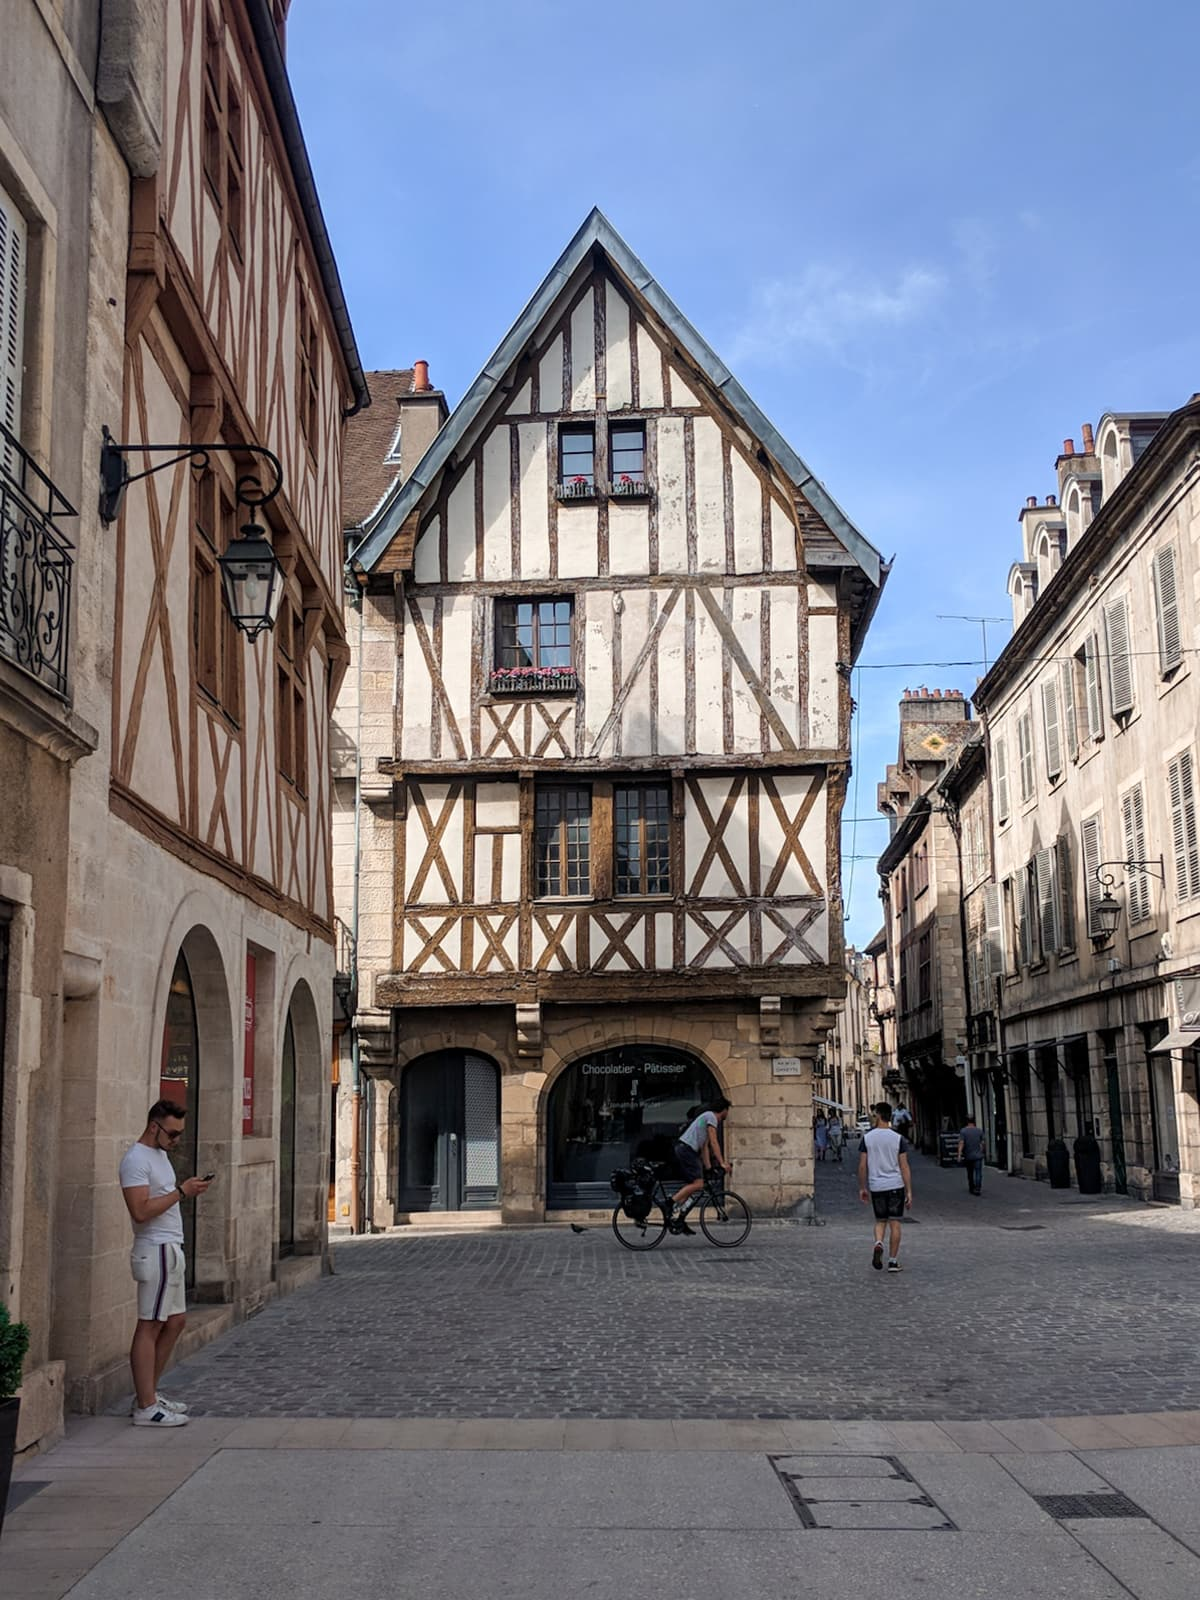 Half-timbered houses on Rue Verrerie in Dijon, France